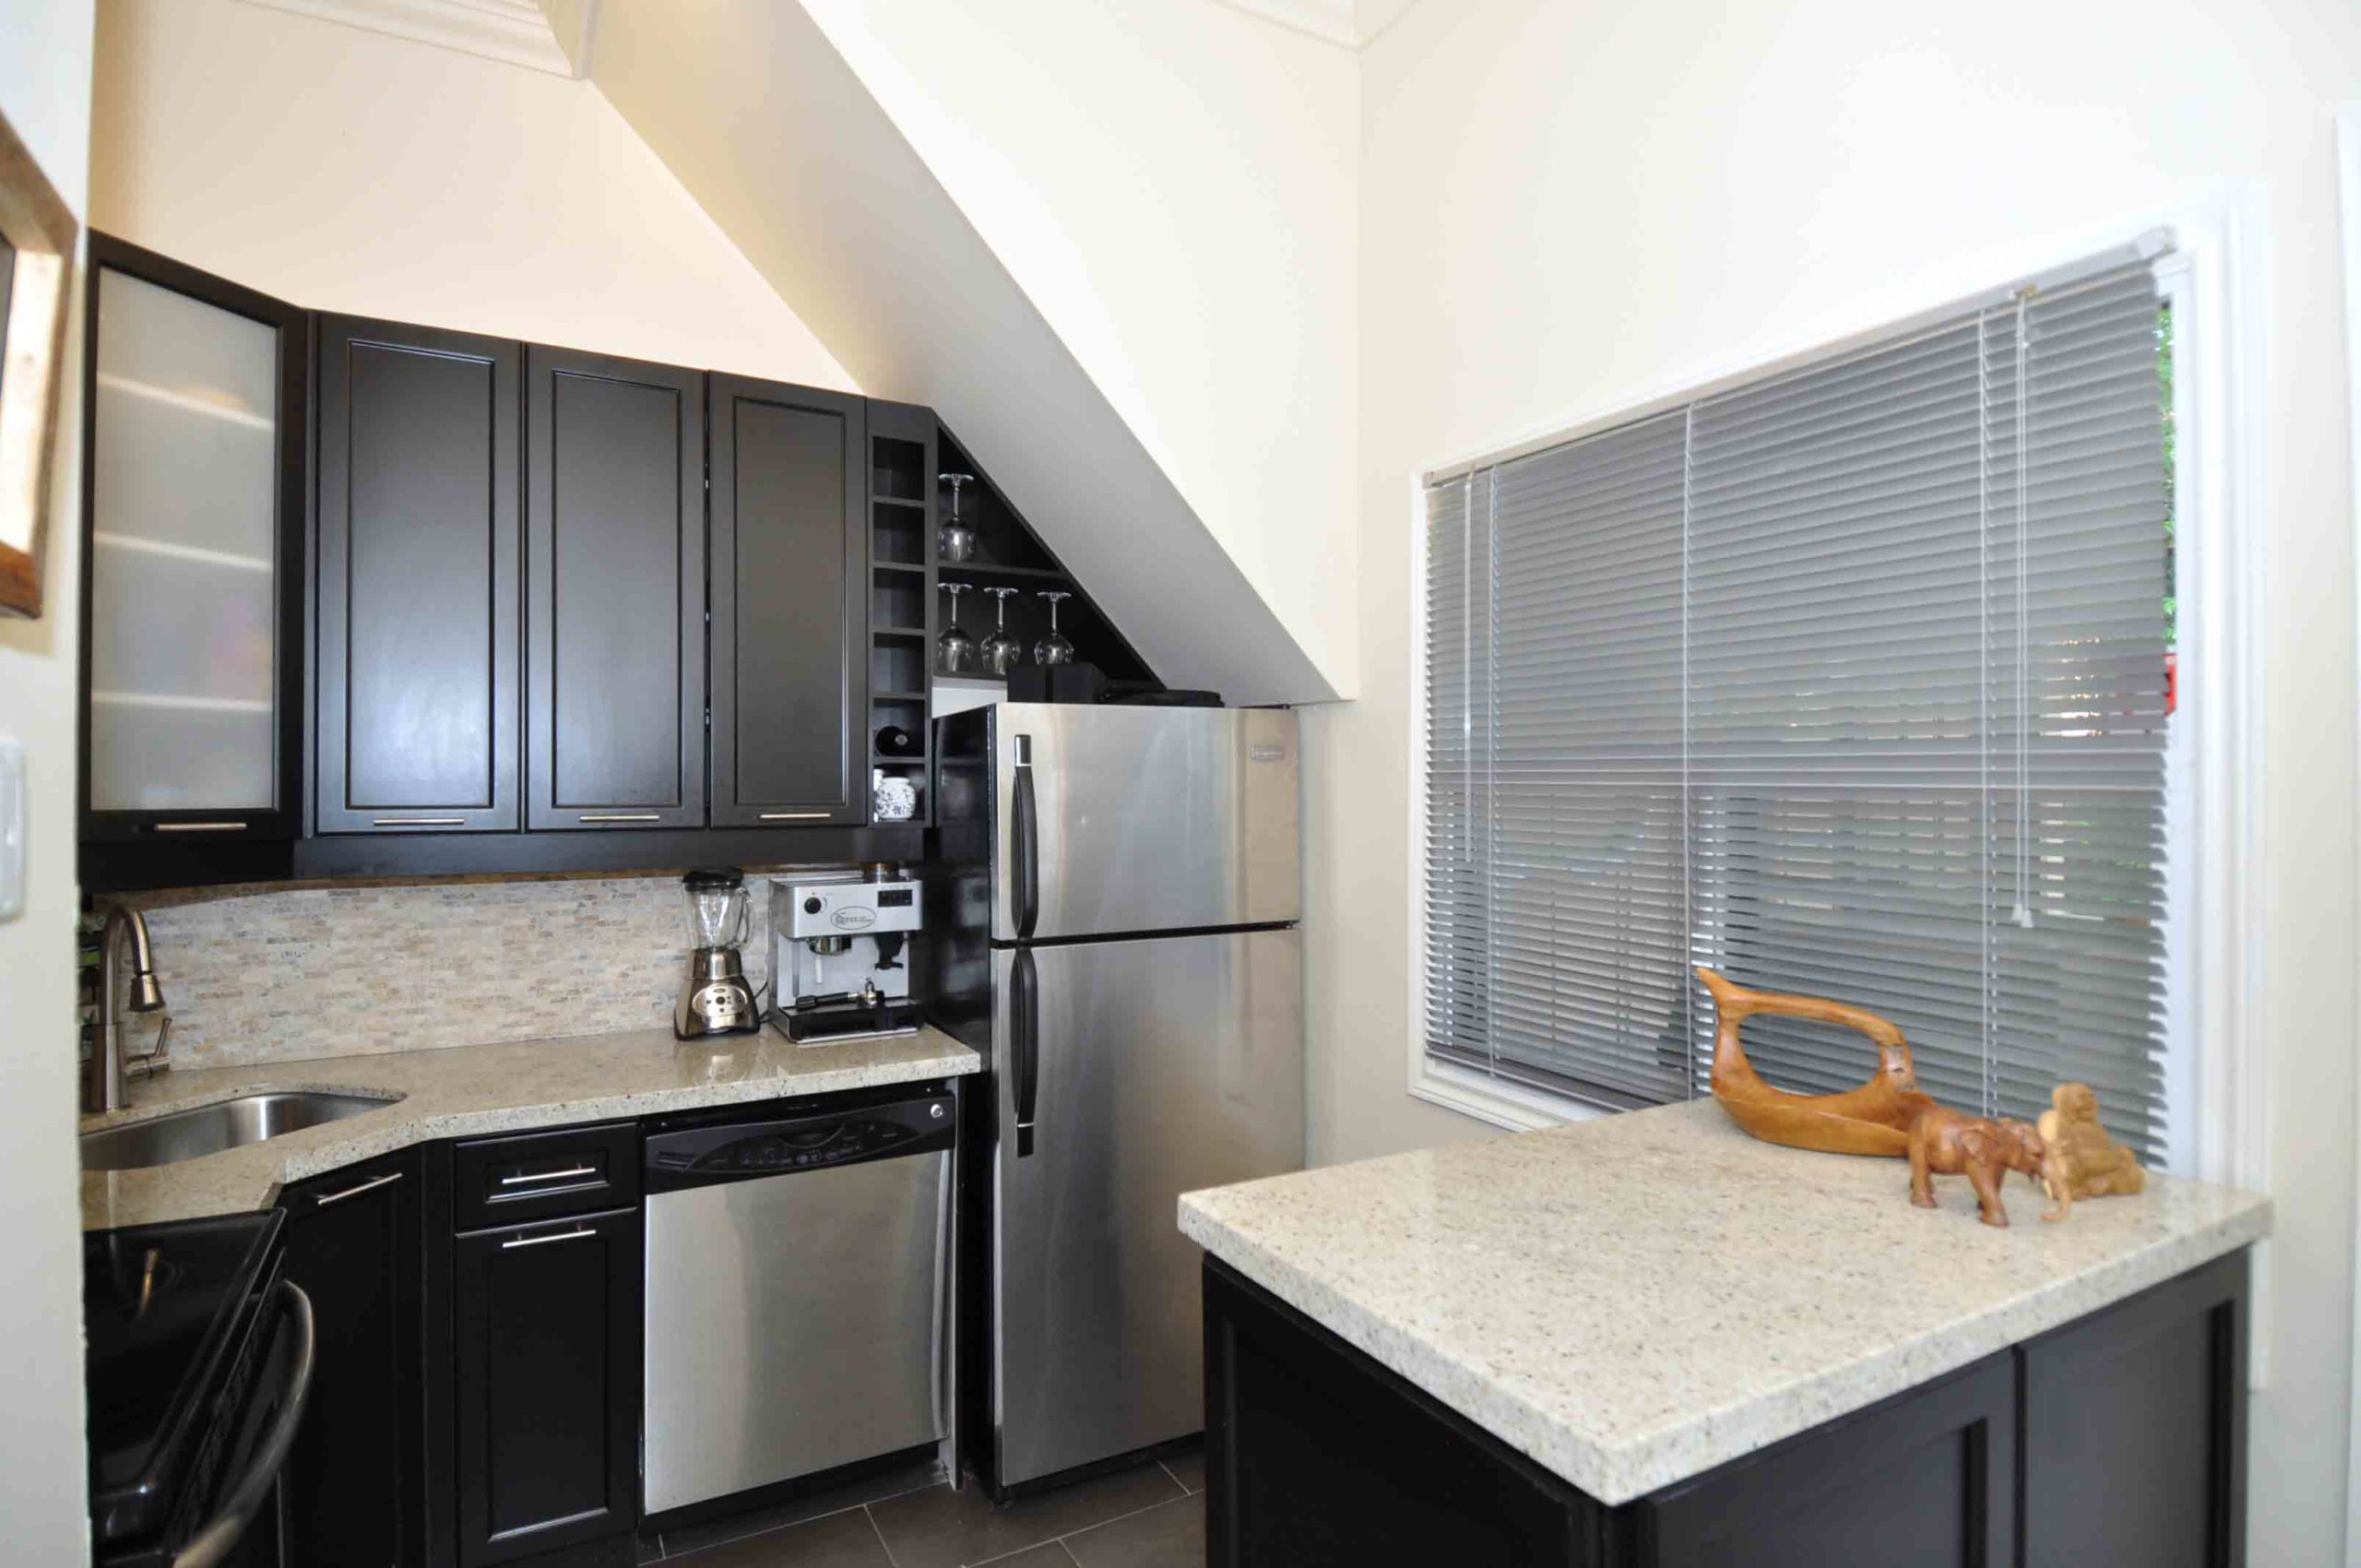 06 360_dundas_street_east_MLS_HID808873_ROOMkitchen